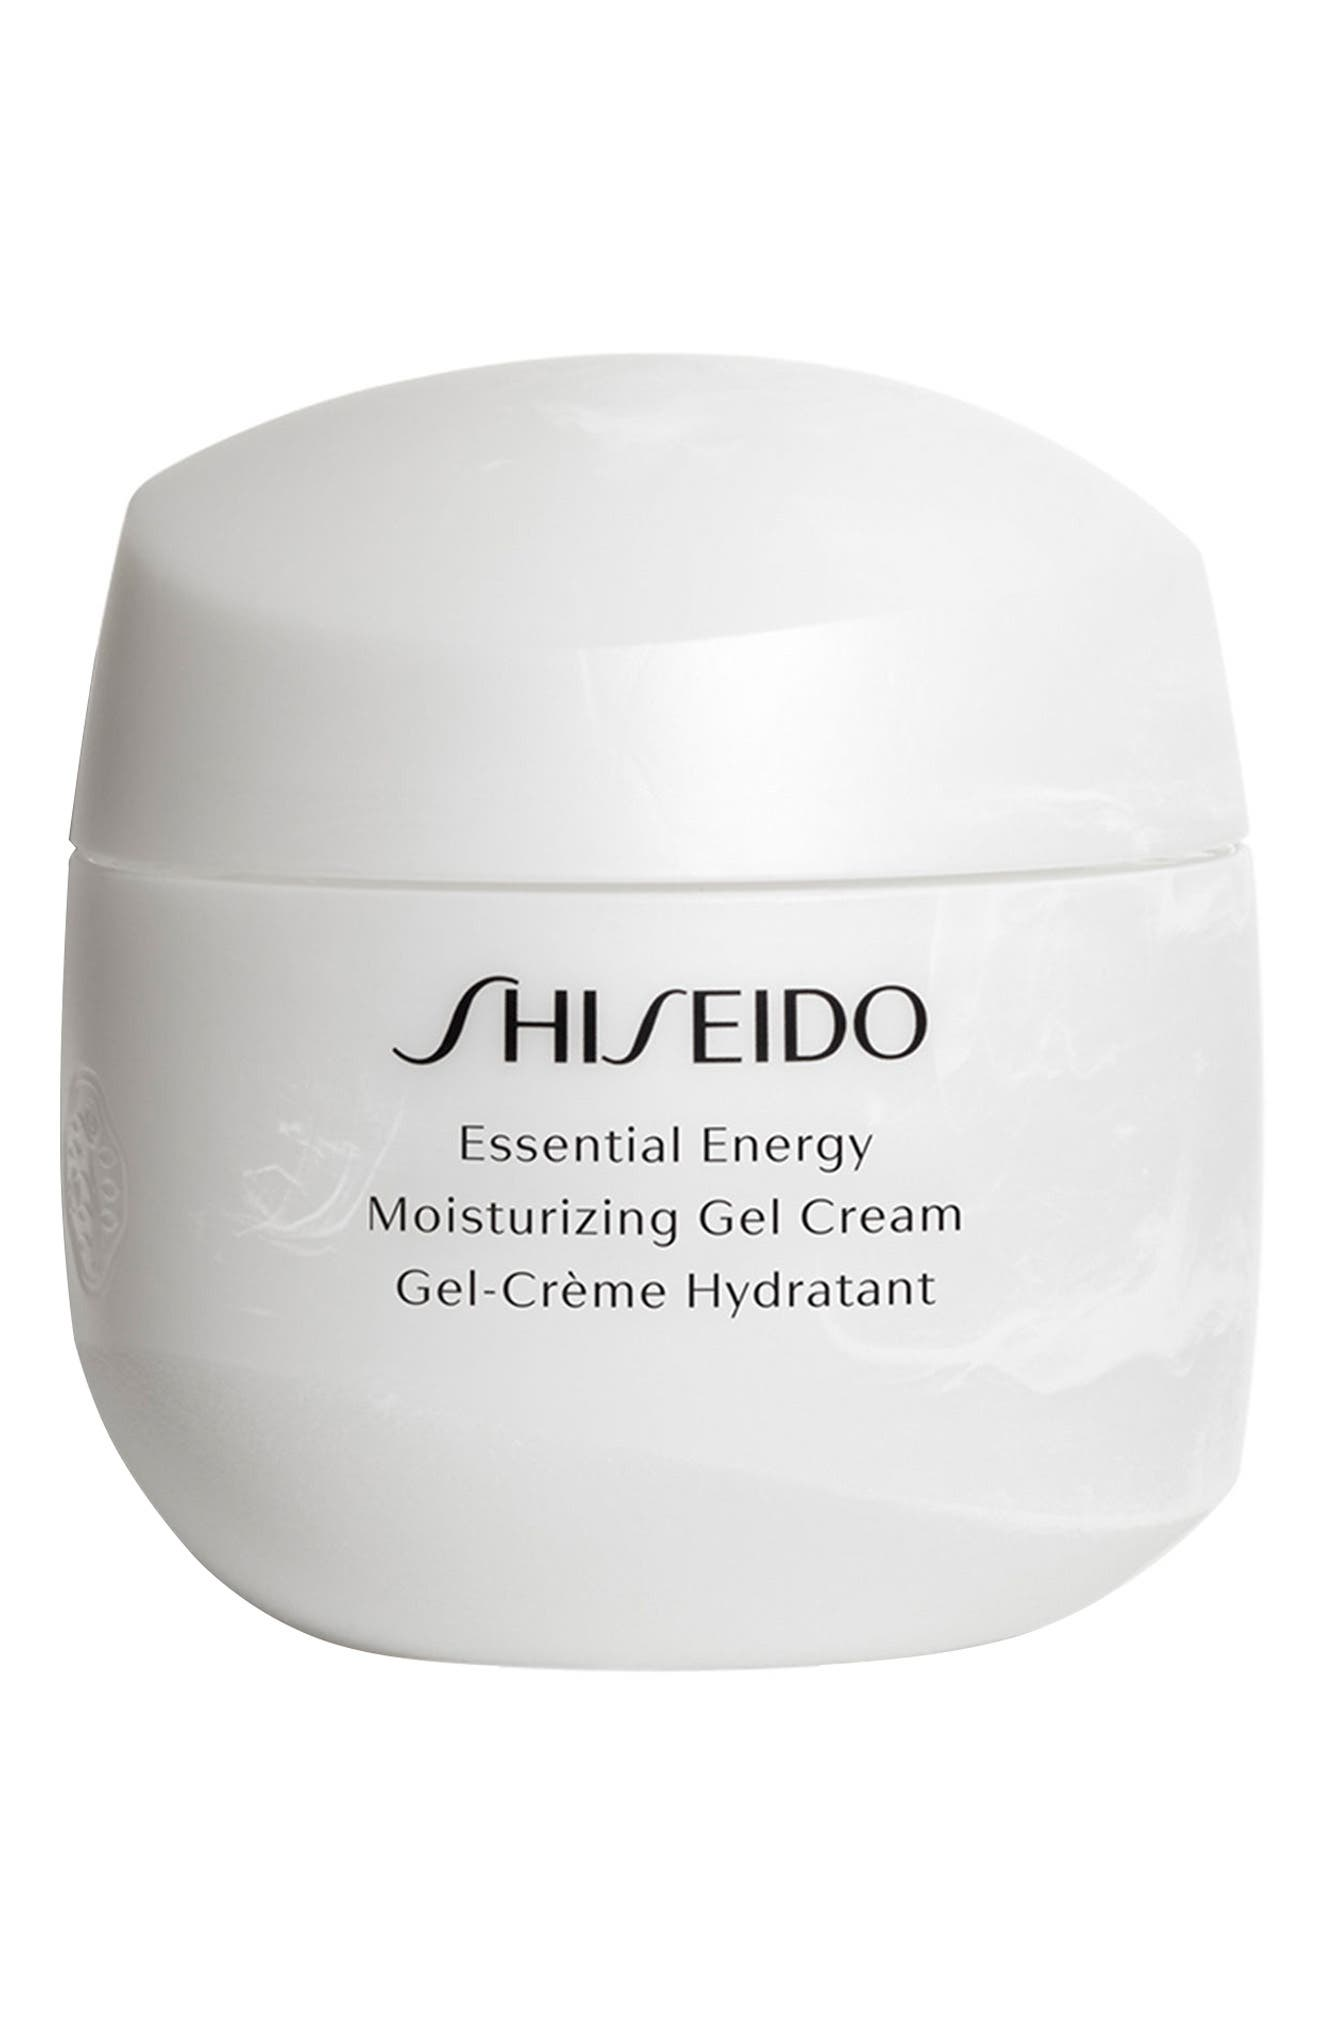 SHISEIDO,                             Essential Energy Moisturizing Gel Cream,                             Main thumbnail 1, color,                             NO COLOR